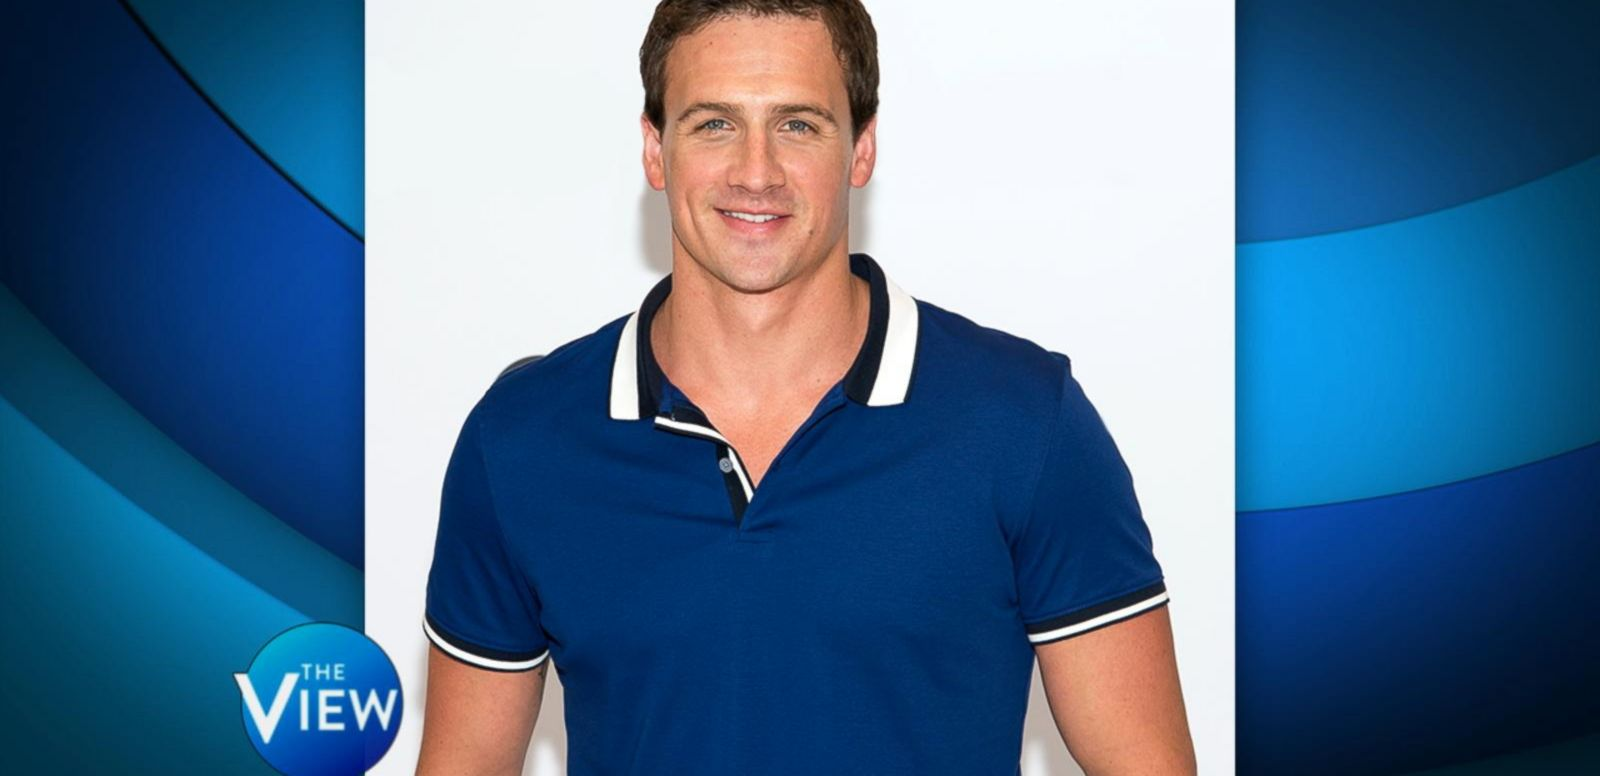 VIDEO: Ryan Lochte Calls Worst Date 'Dud'